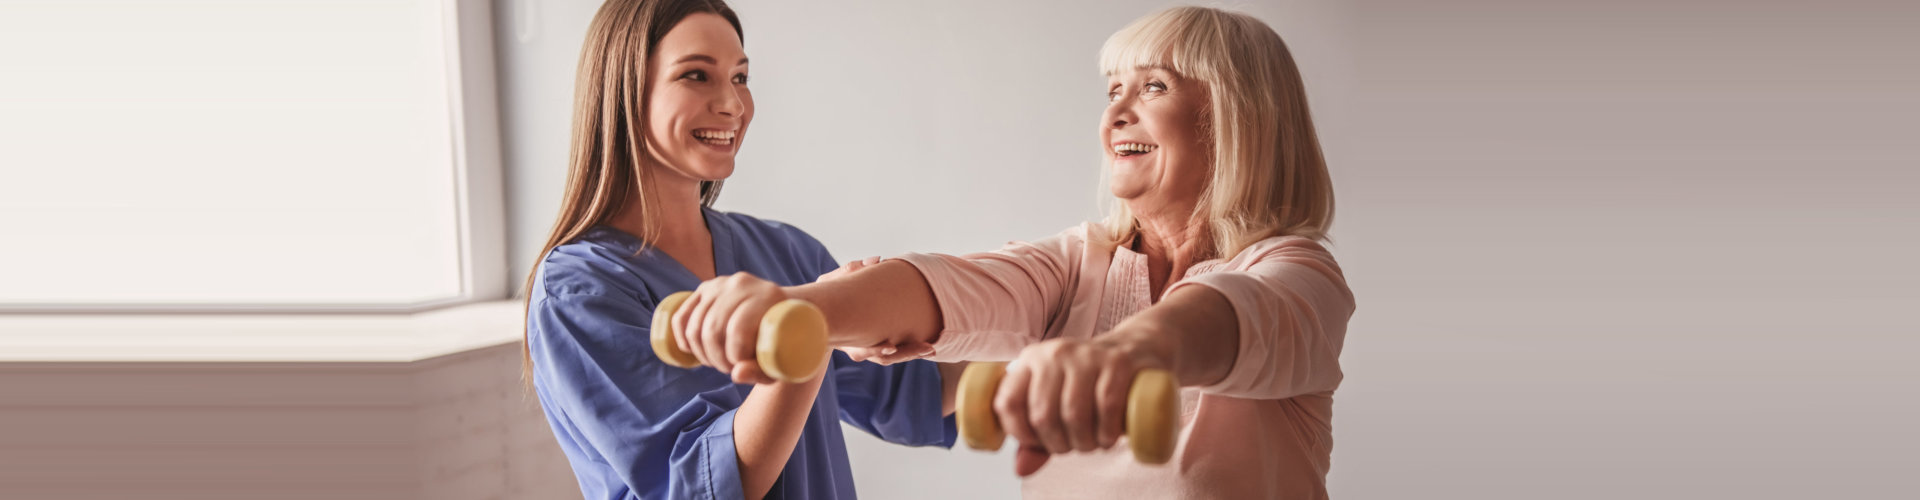 caregiver helping her patient work out